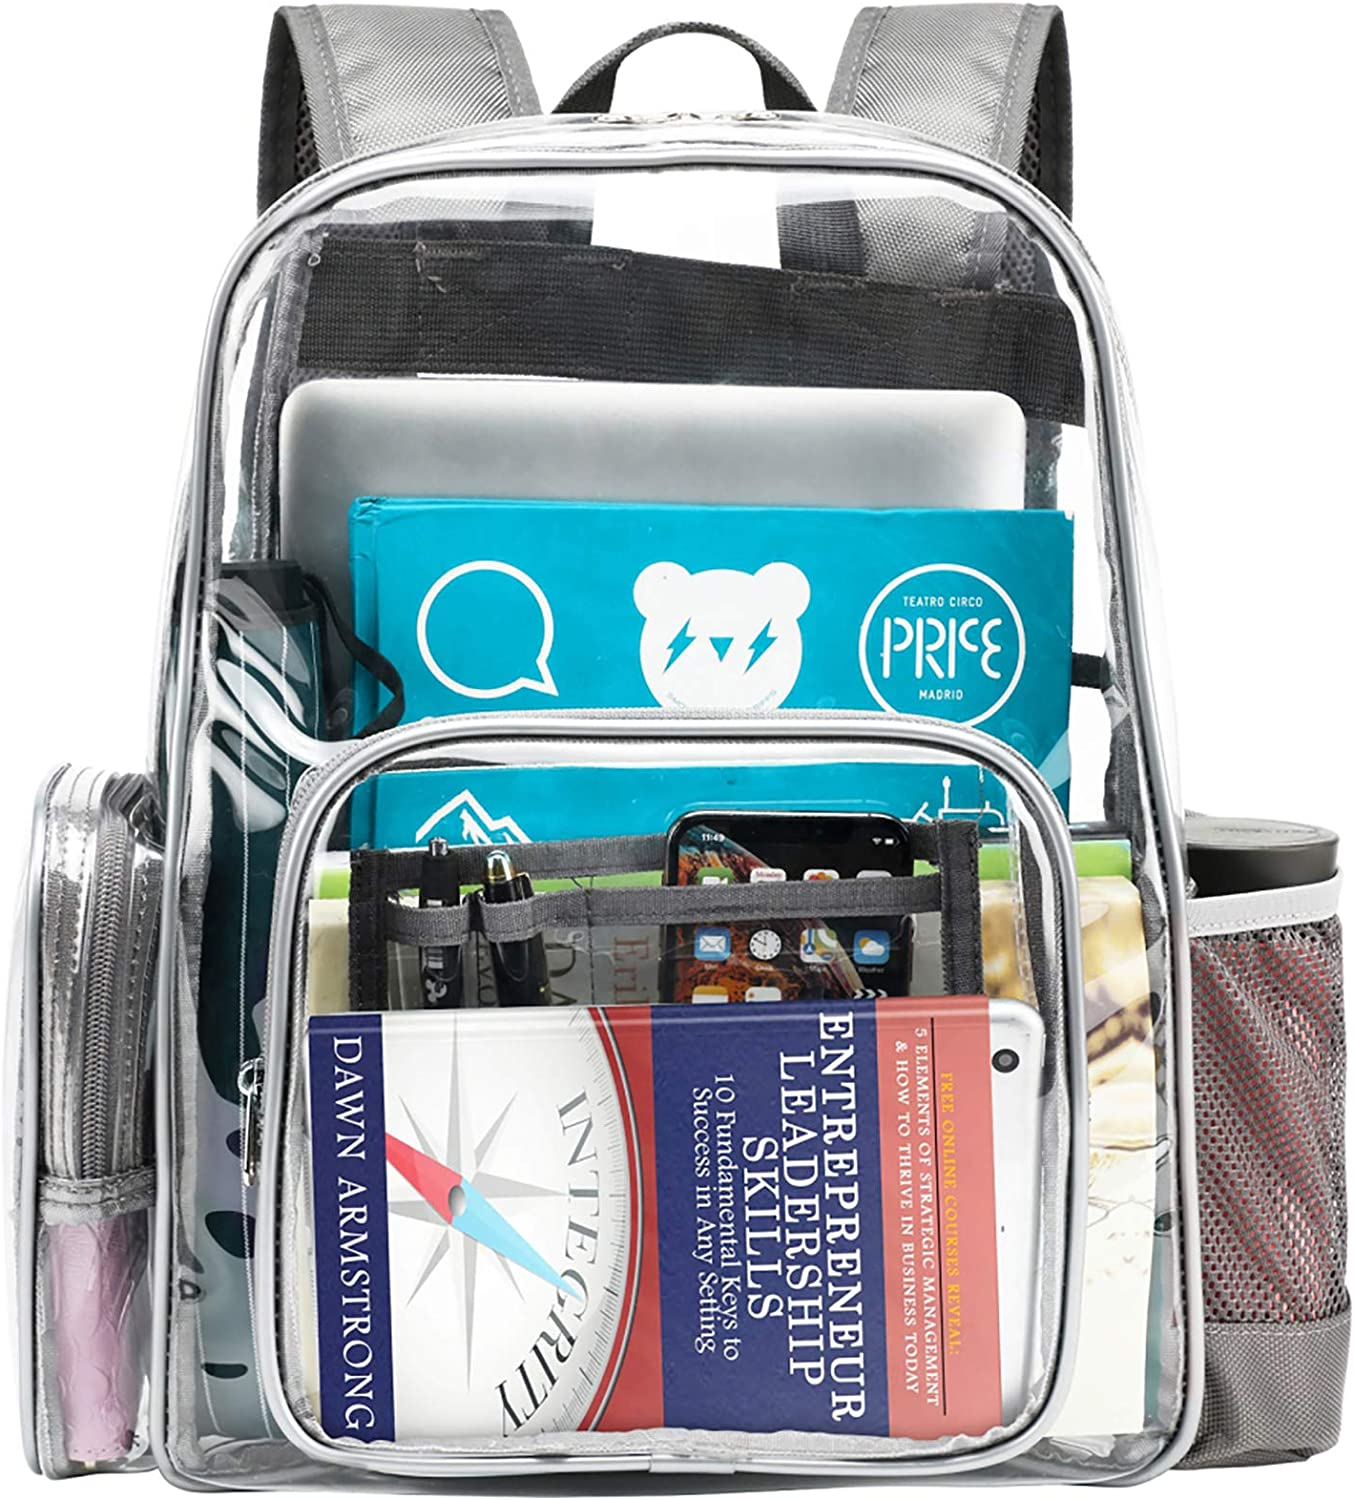 Clear Backpack, Ace Teah Heavy Duty Backpacks, Transparent Backpack for School, Light Grey